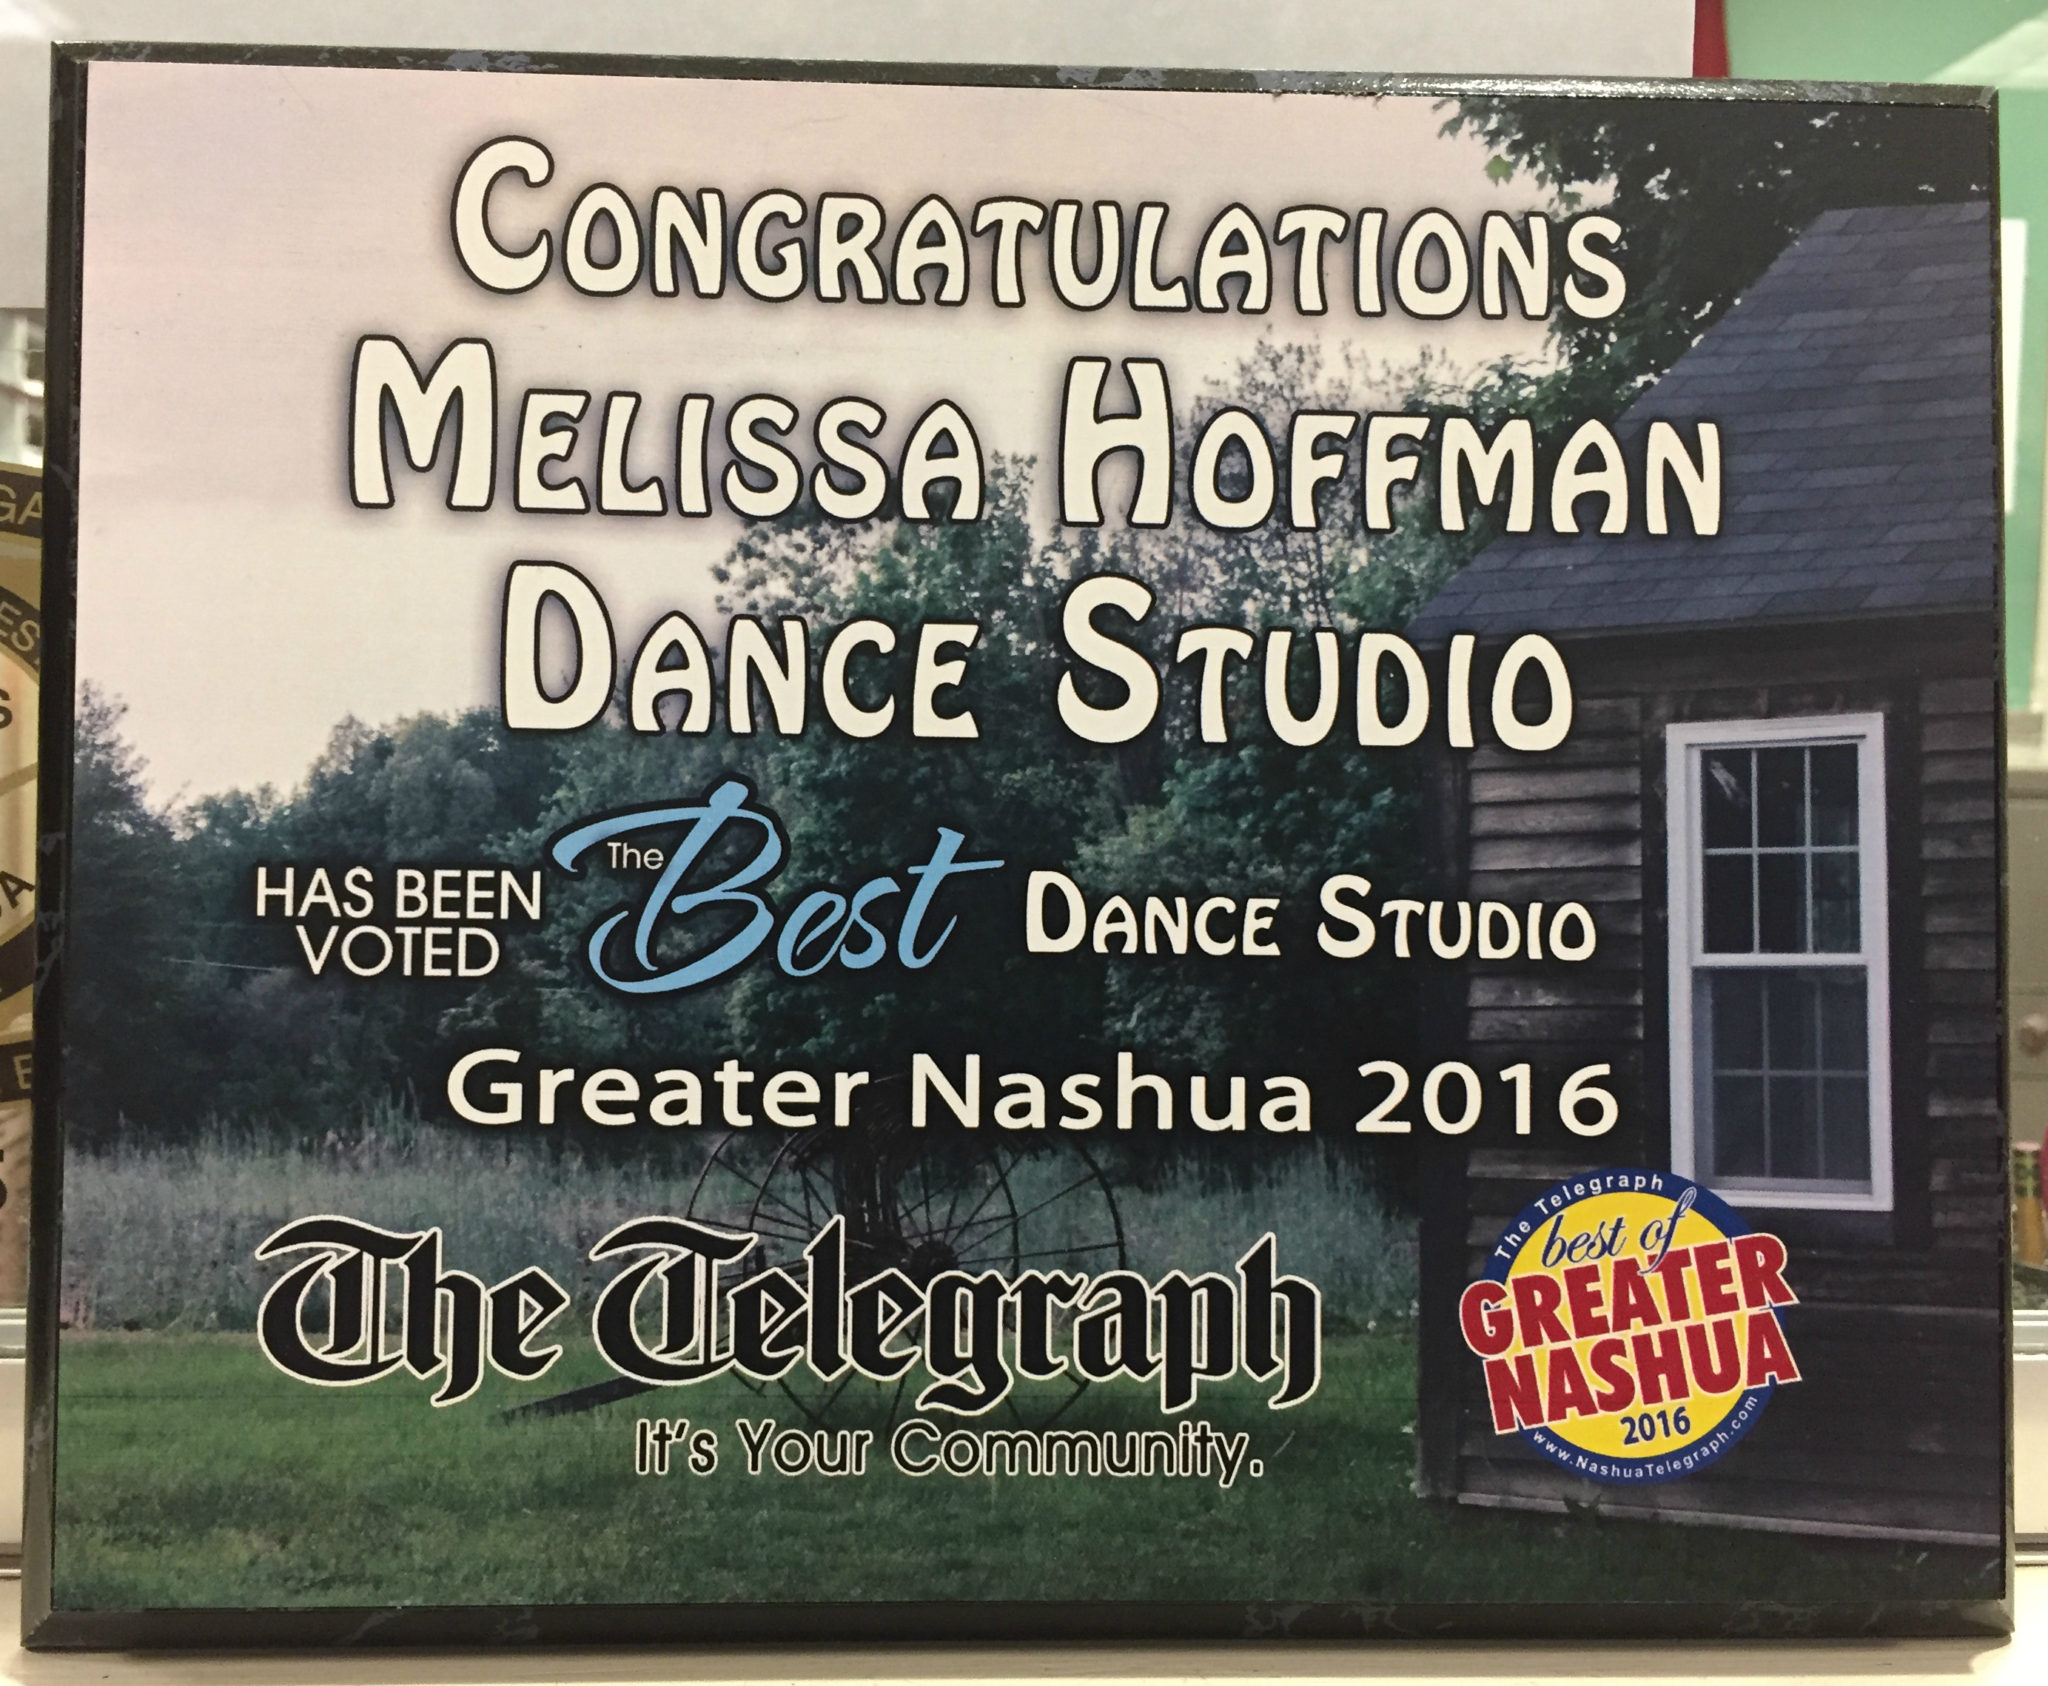 The Best of Greater Nashua 2016!